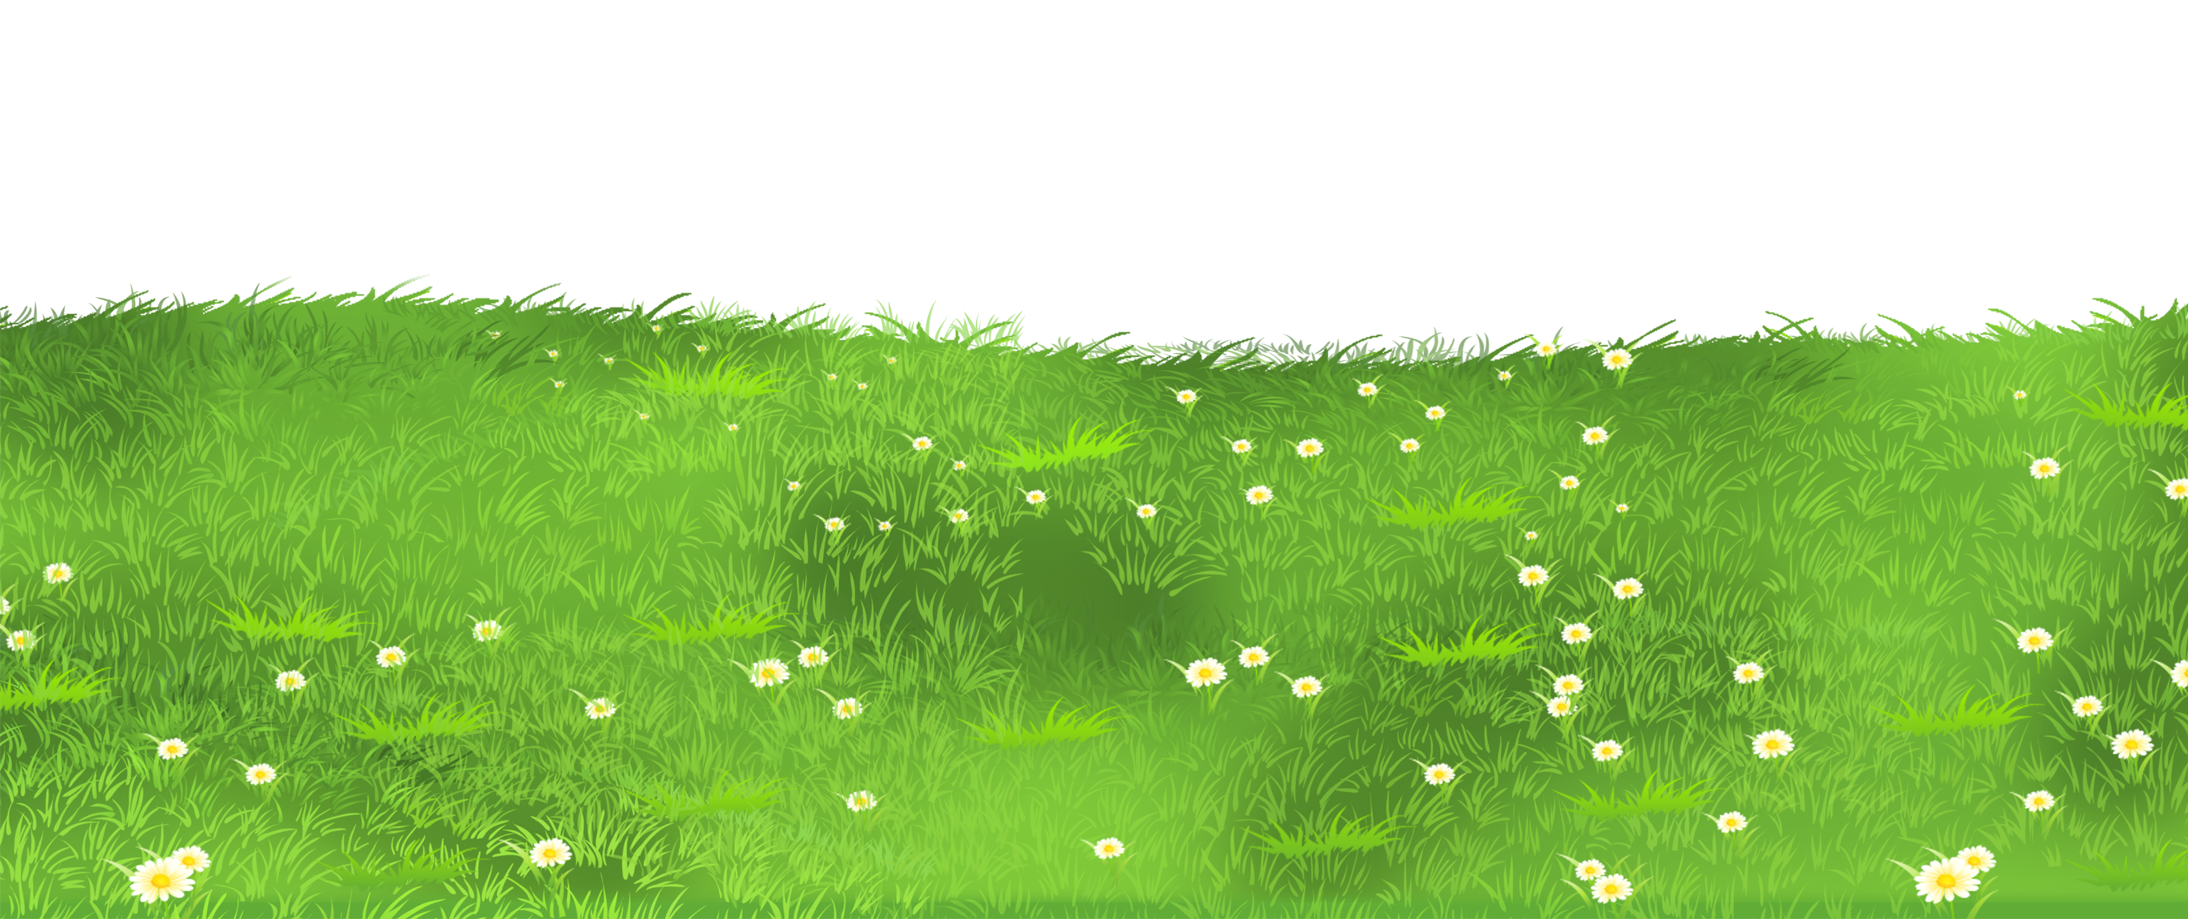 Grass ground with daisies. Farming clipart field